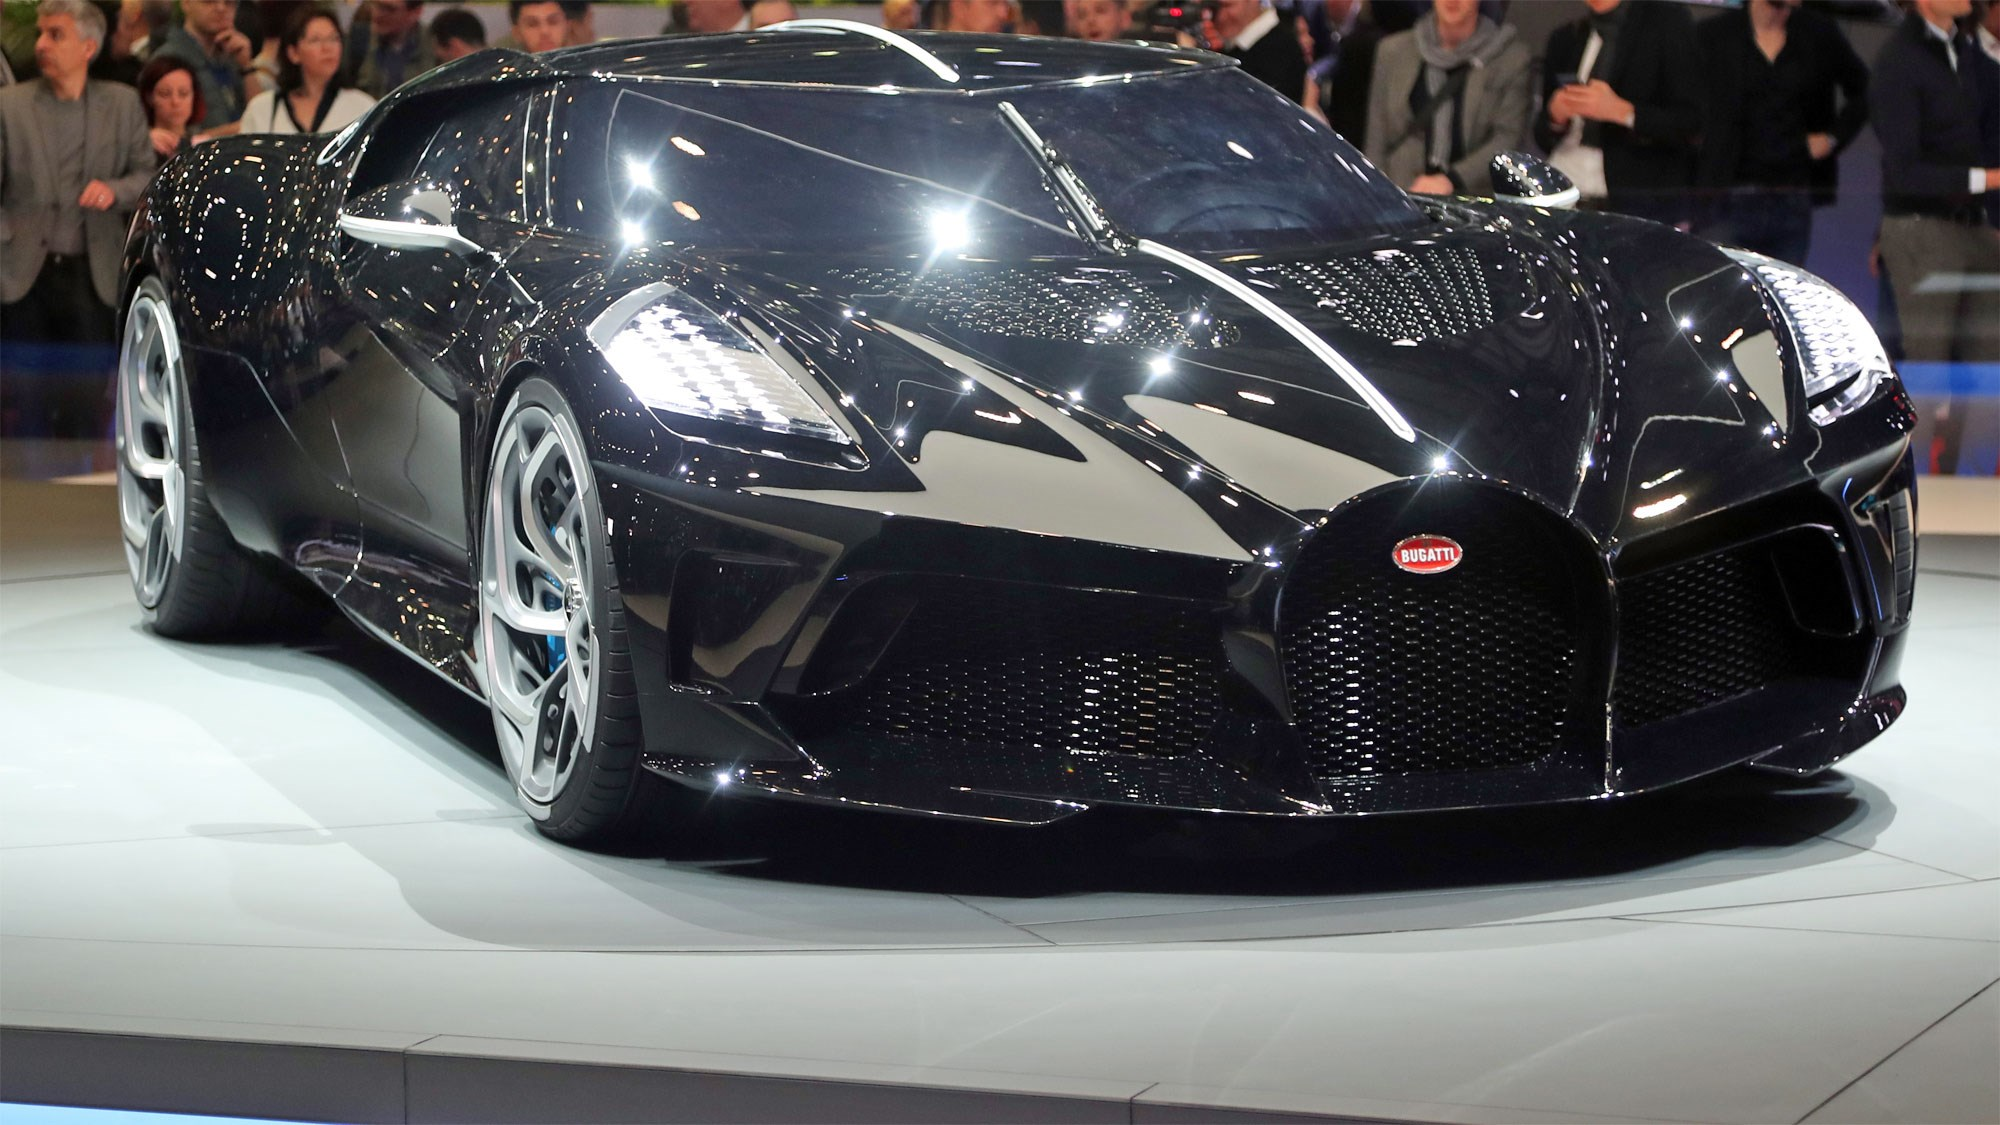 Bugatti Voiture Noire: £13m Hyper-coupe Is World's Most